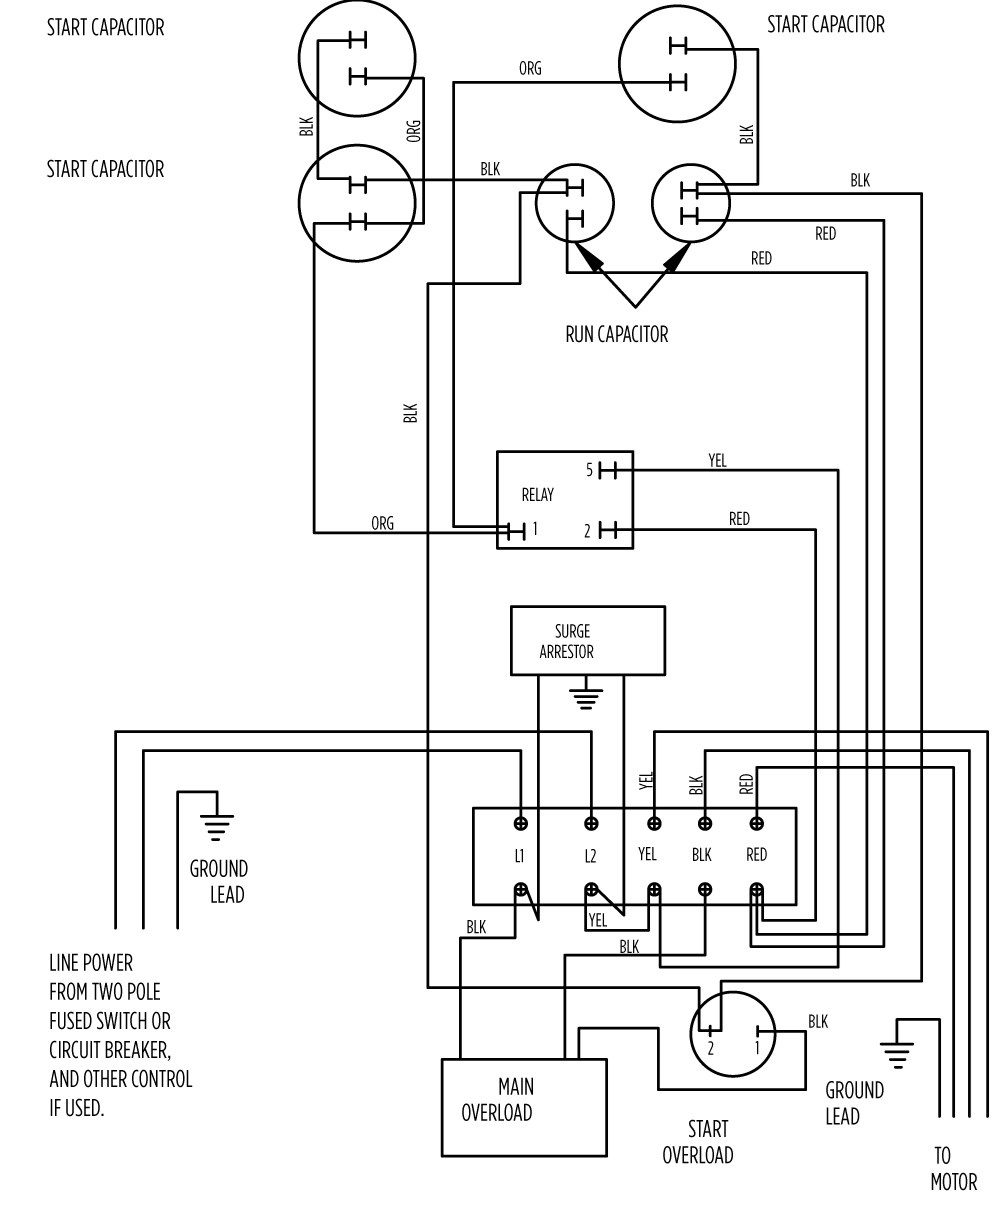 franklin electric motor wiring diagram wiring diagram mega franklin motor wiring diagram wiring diagram show franklin [ 1000 x 1207 Pixel ]